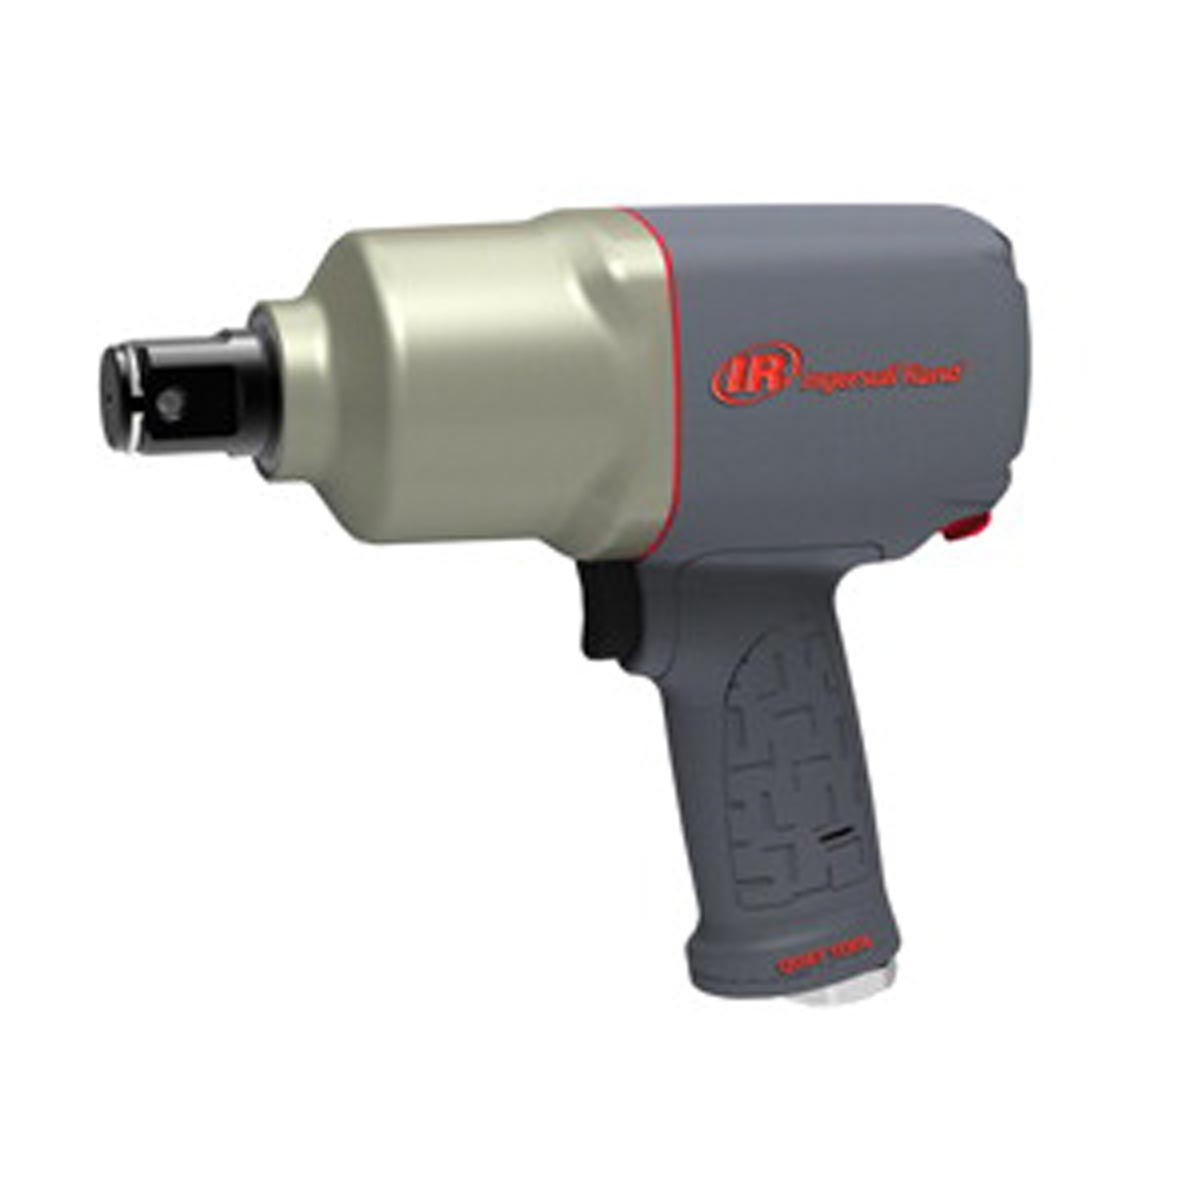 1-In Drive Quiet Titanium Impact Wrench - 1,350 Ft-Lbs Max Torque